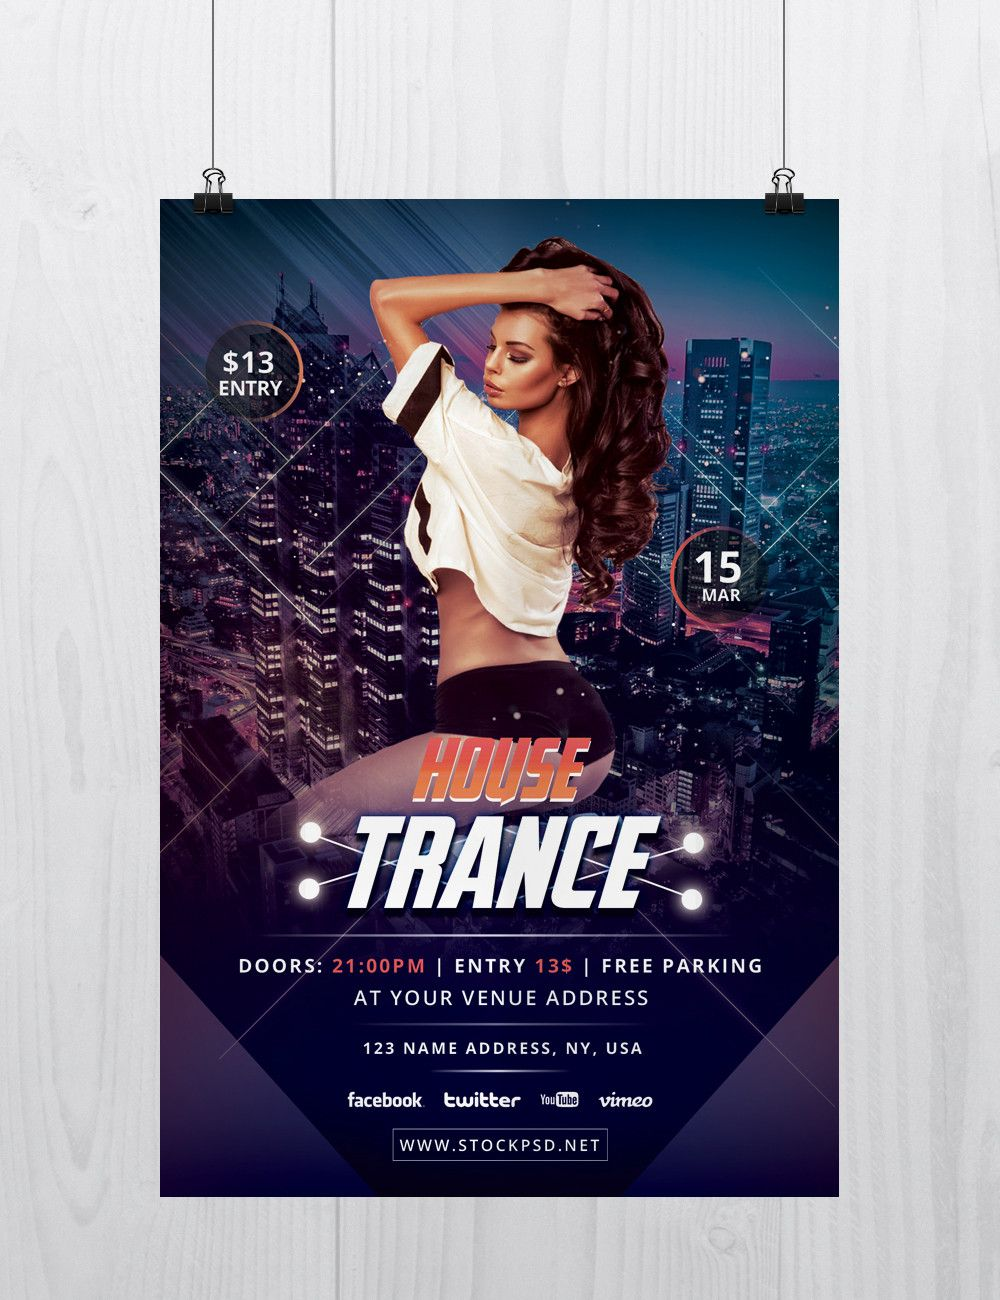 House+Trance+–+Download+Free+PSD+Flyer+Template | art flayers ...